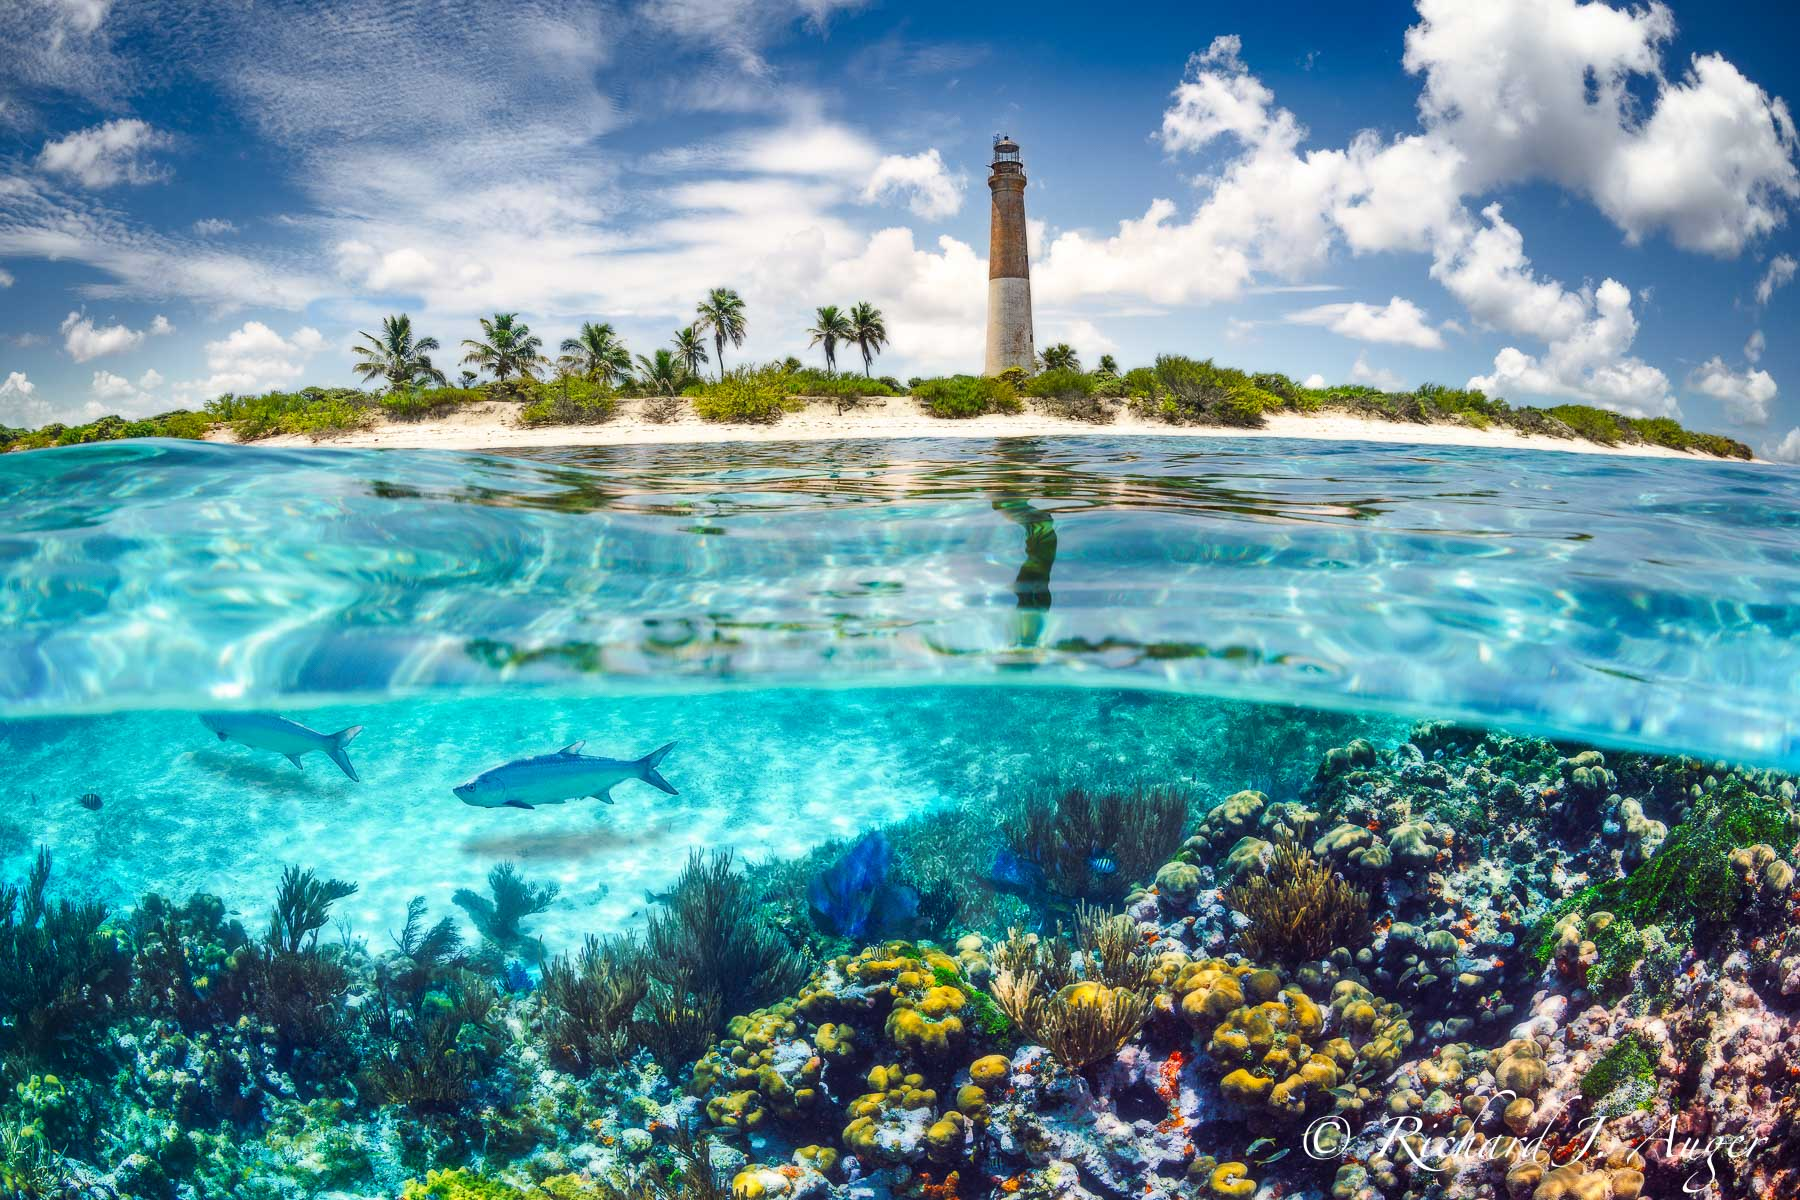 Loggerhead Key, Dry Tortugas National Park, Underwater, Lighthouse, Little Africa, Coral Reef, Tarpon, Richard Auger